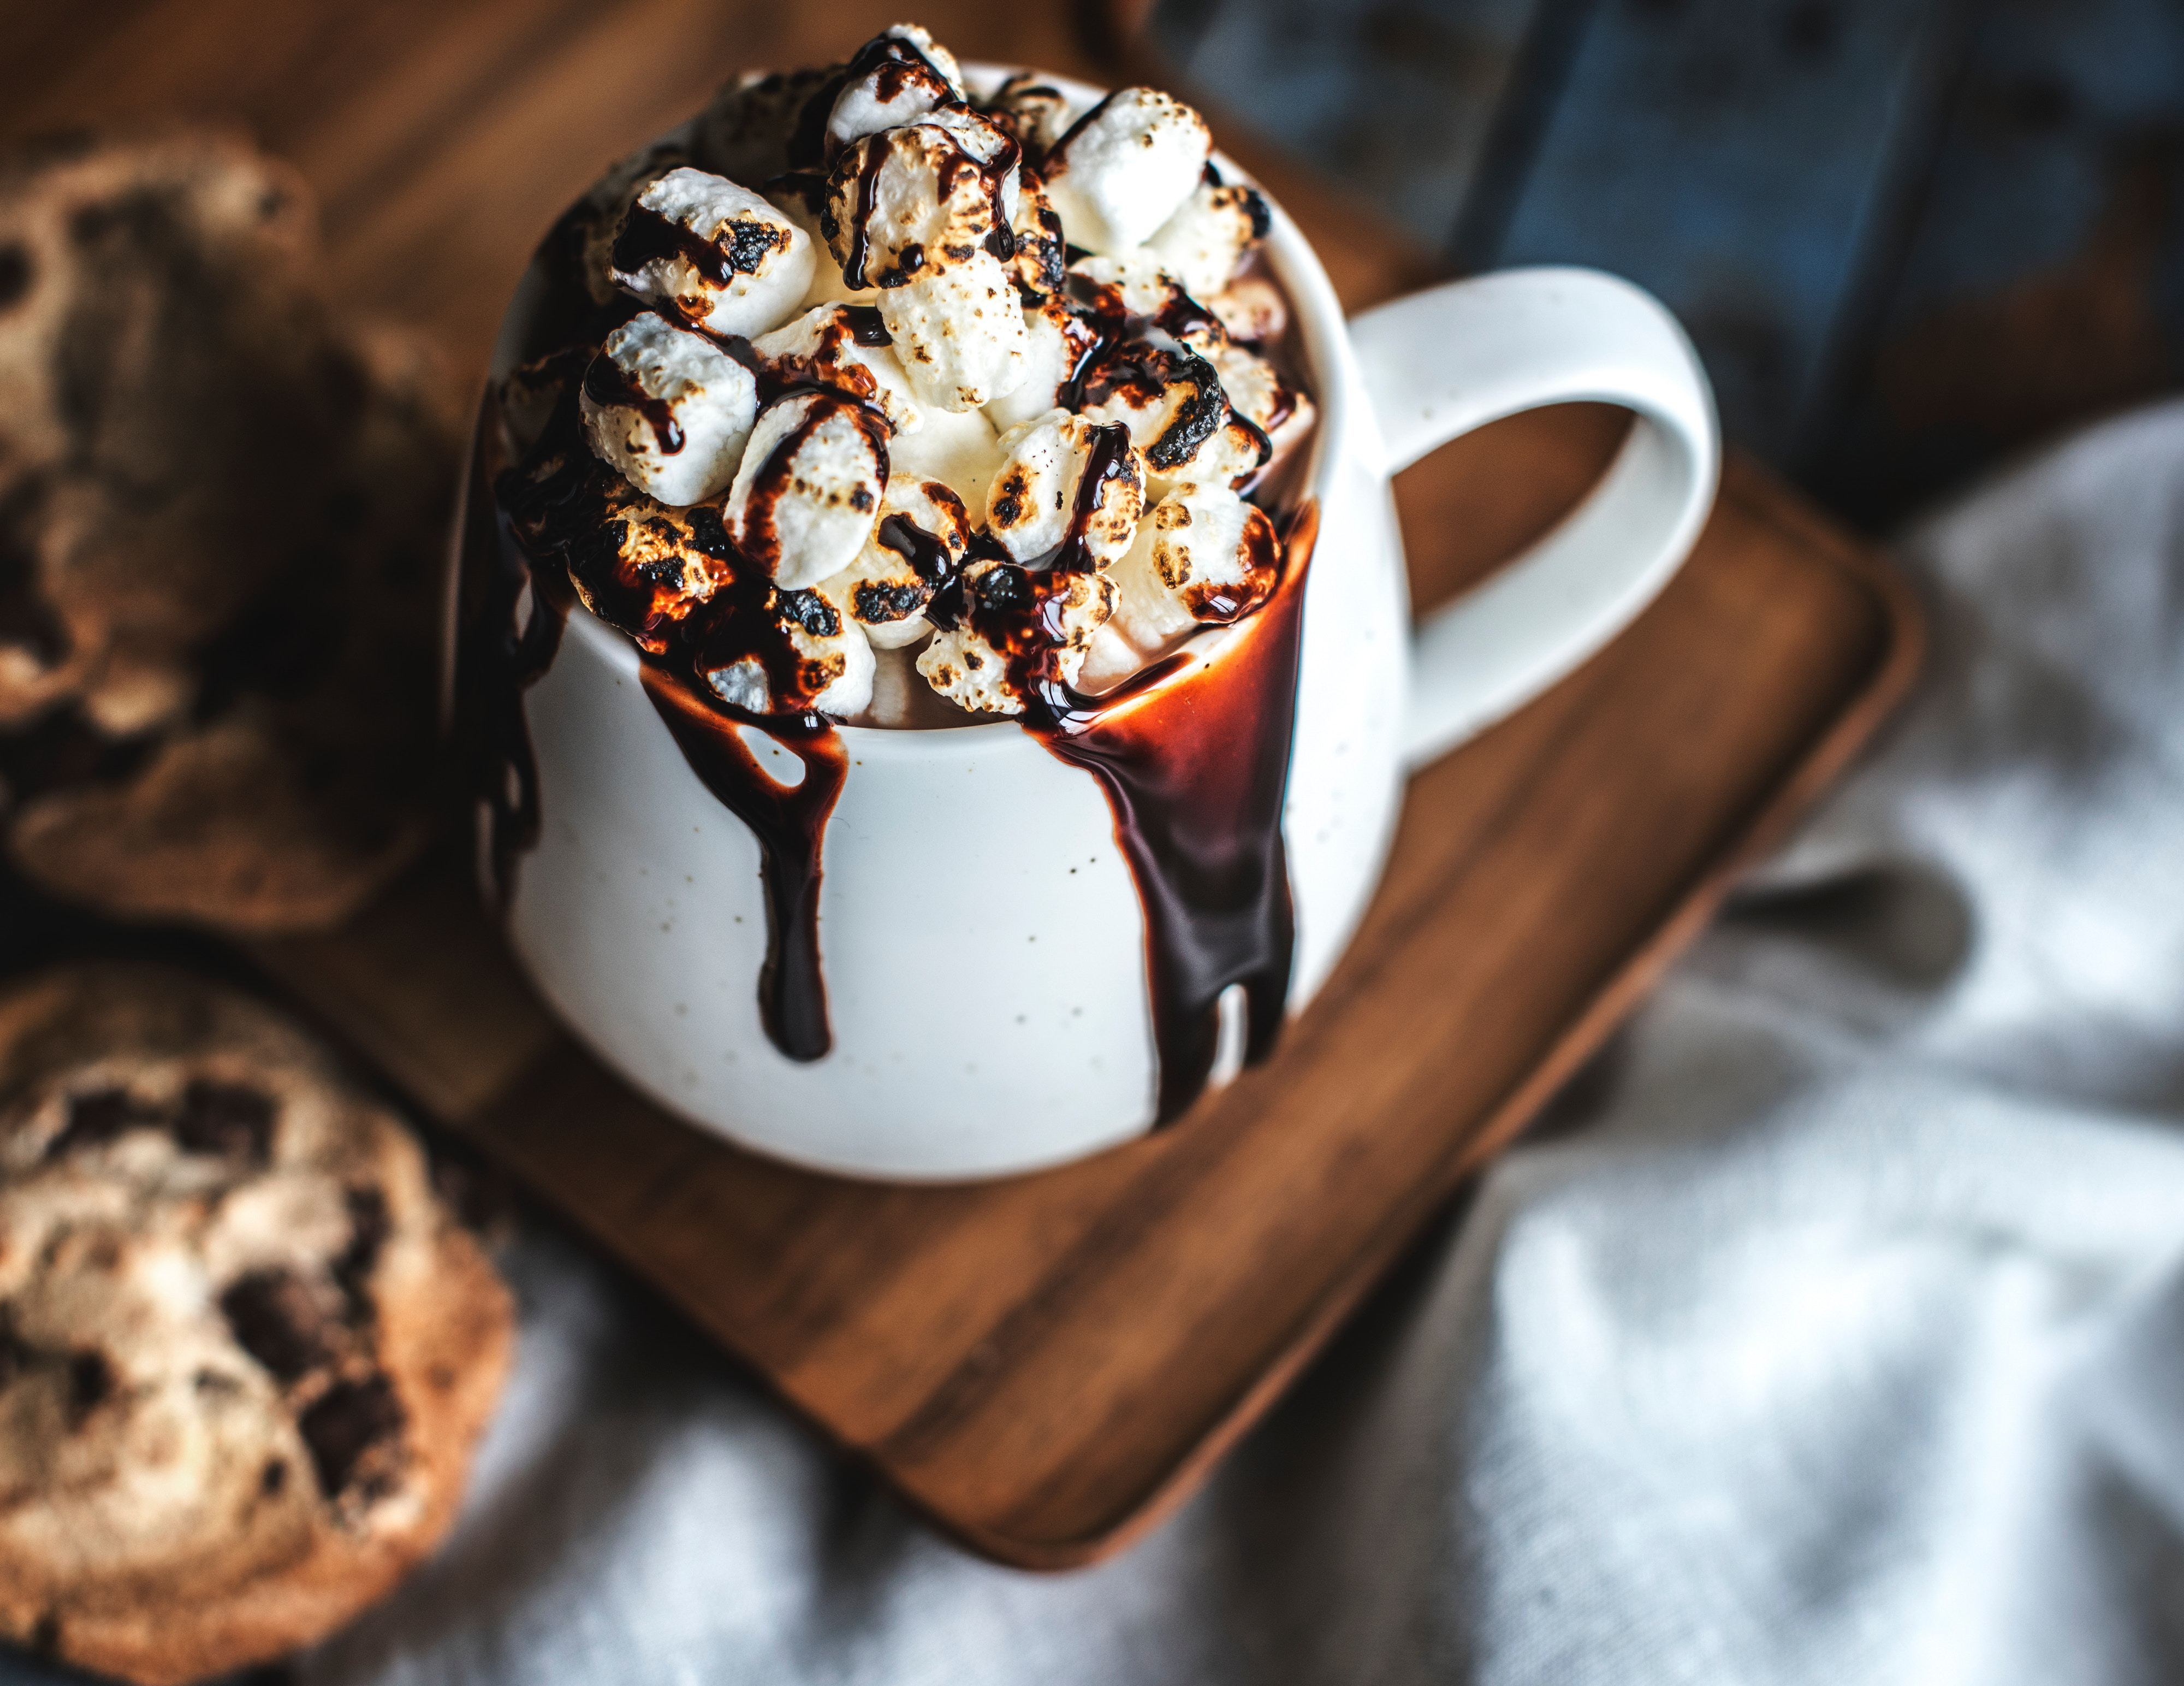 Explore Kansas City during the holiday season the right way and find your perfect cup of hot chocolate.